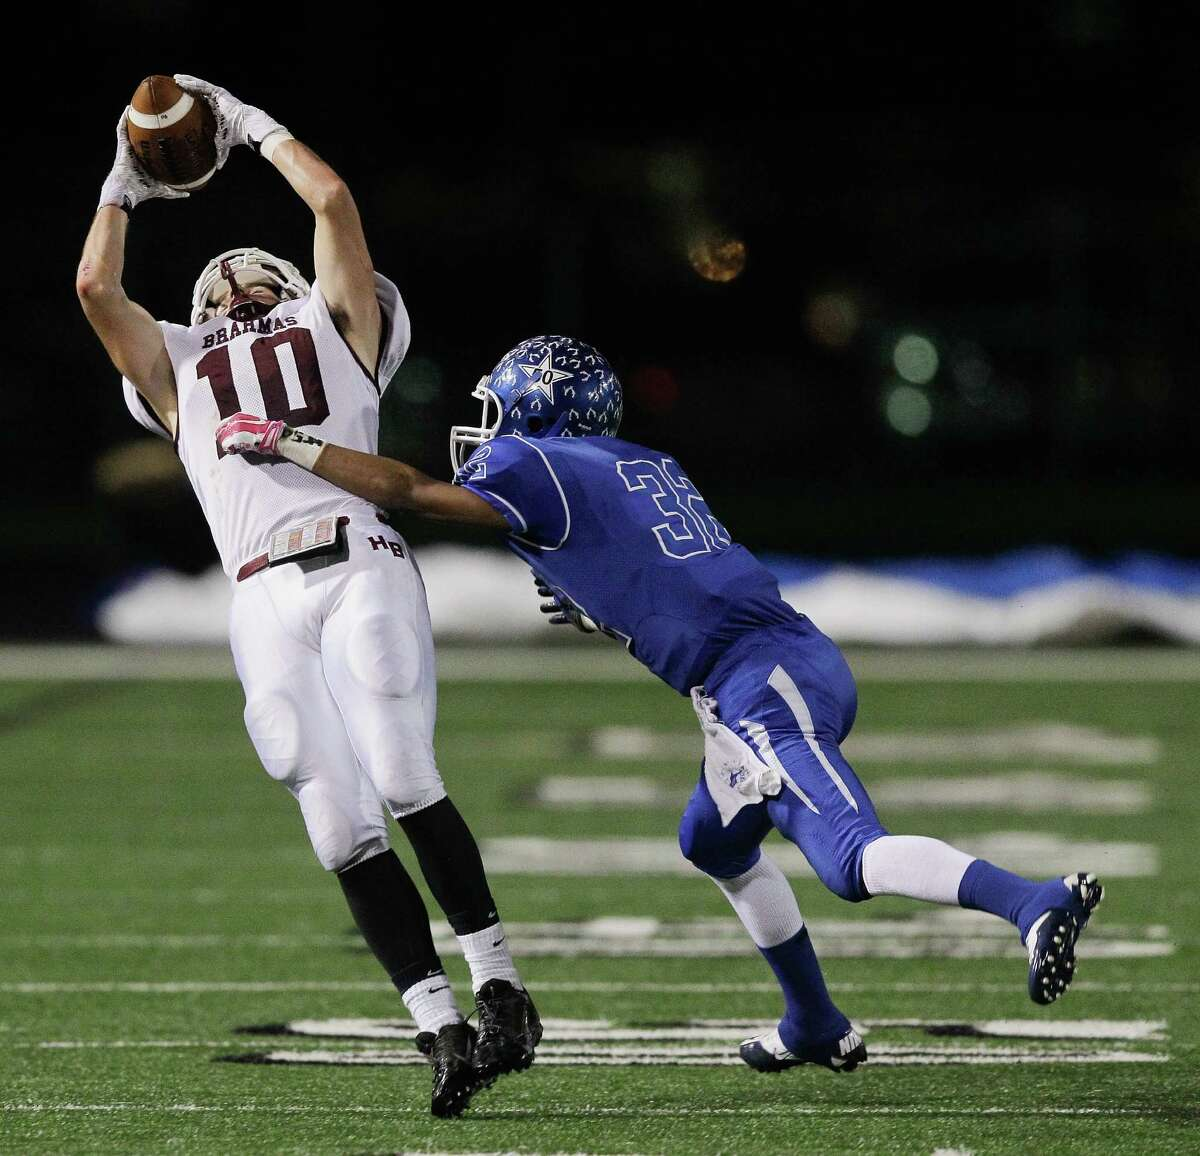 Hallaettsville receiver Trenton McGee #10 completes a pass over Edna's Jordan Norman #32 during a Class 4A Division II Region IV high school playoff game between Edna and Hallettsville on Friday, December 5, 2014. (Bob Levey/For The Chronicle)